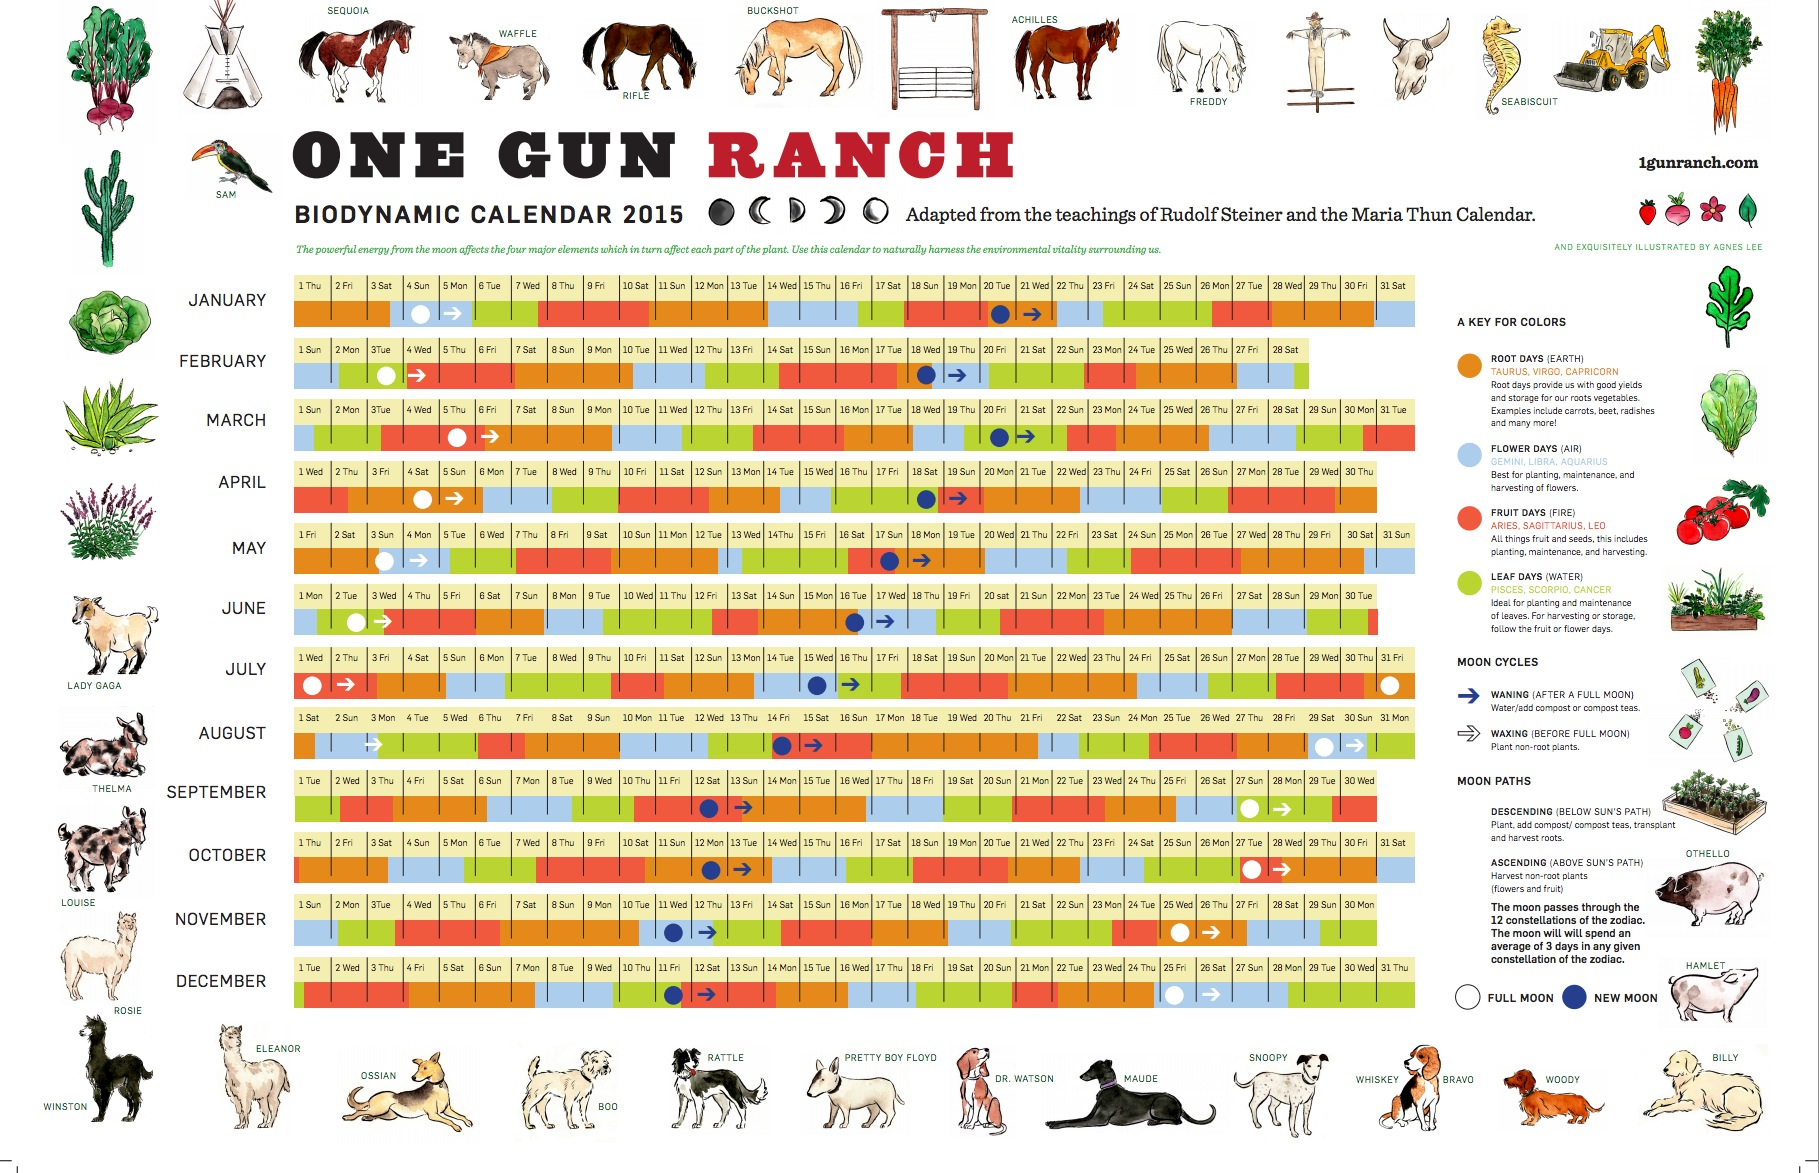 Great Infographic of Biodynamic calendar 2015 by @onegunranch ...